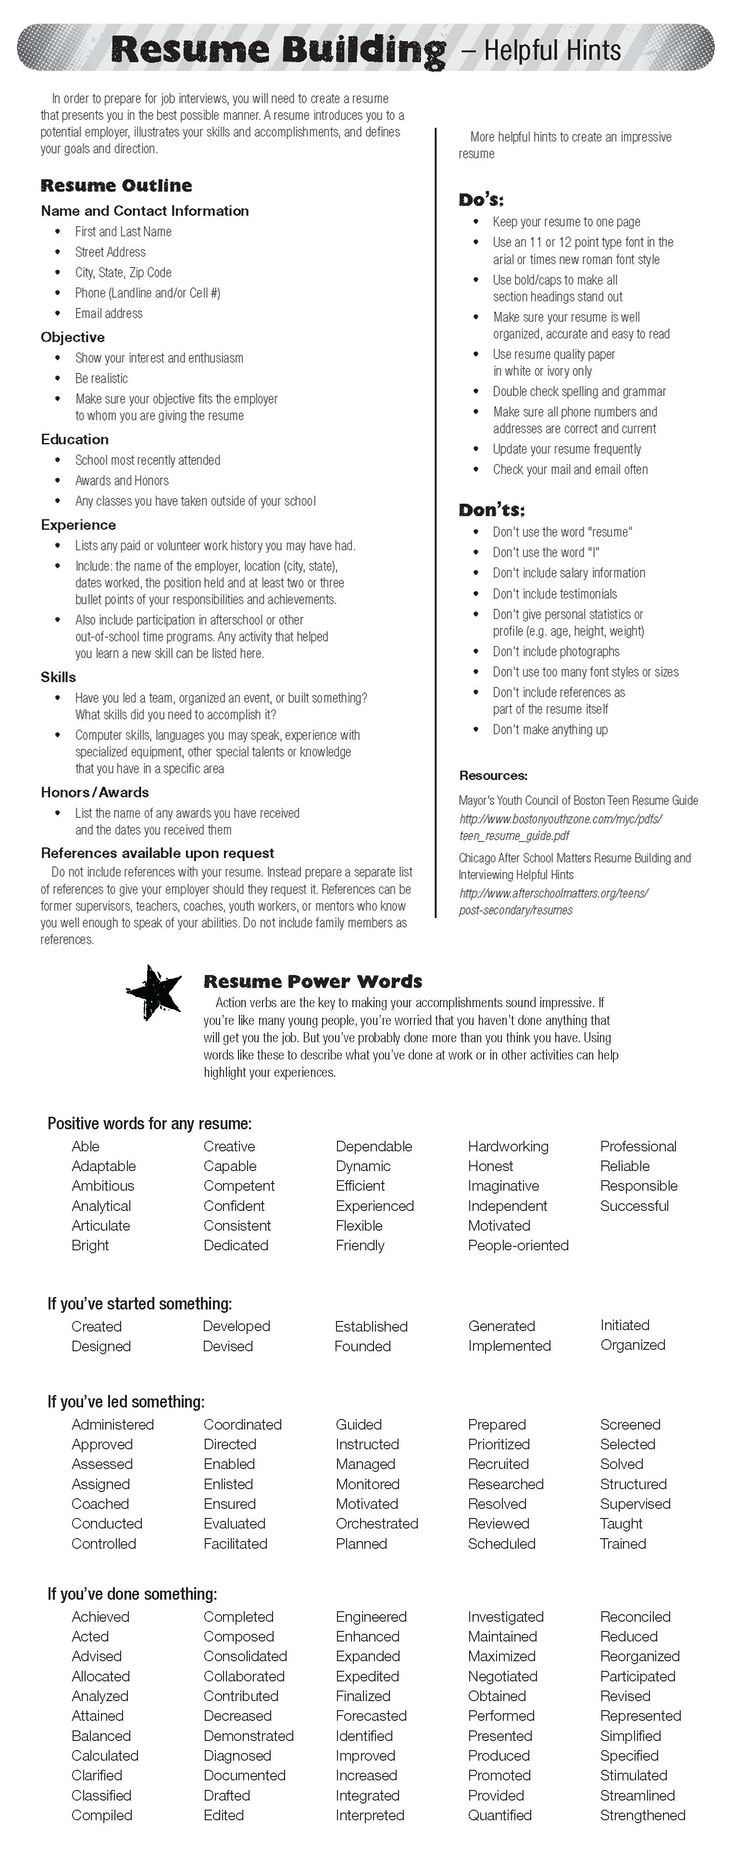 Opposenewapstandardsus  Prepossessing  Ideas About Resume On Pinterest  Cv Format Resume Cv And  With Handsome  Ideas About Resume On Pinterest  Cv Format Resume Cv And Resume Templates With Delightful Resume Template For Microsoft Word Also It Manager Resume Sample In Addition Leather Resume Portfolio And Receptionist Skills For Resume As Well As Make Resume Online Free Additionally Architecture Resumes From Pinterestcom With Opposenewapstandardsus  Handsome  Ideas About Resume On Pinterest  Cv Format Resume Cv And  With Delightful  Ideas About Resume On Pinterest  Cv Format Resume Cv And Resume Templates And Prepossessing Resume Template For Microsoft Word Also It Manager Resume Sample In Addition Leather Resume Portfolio From Pinterestcom